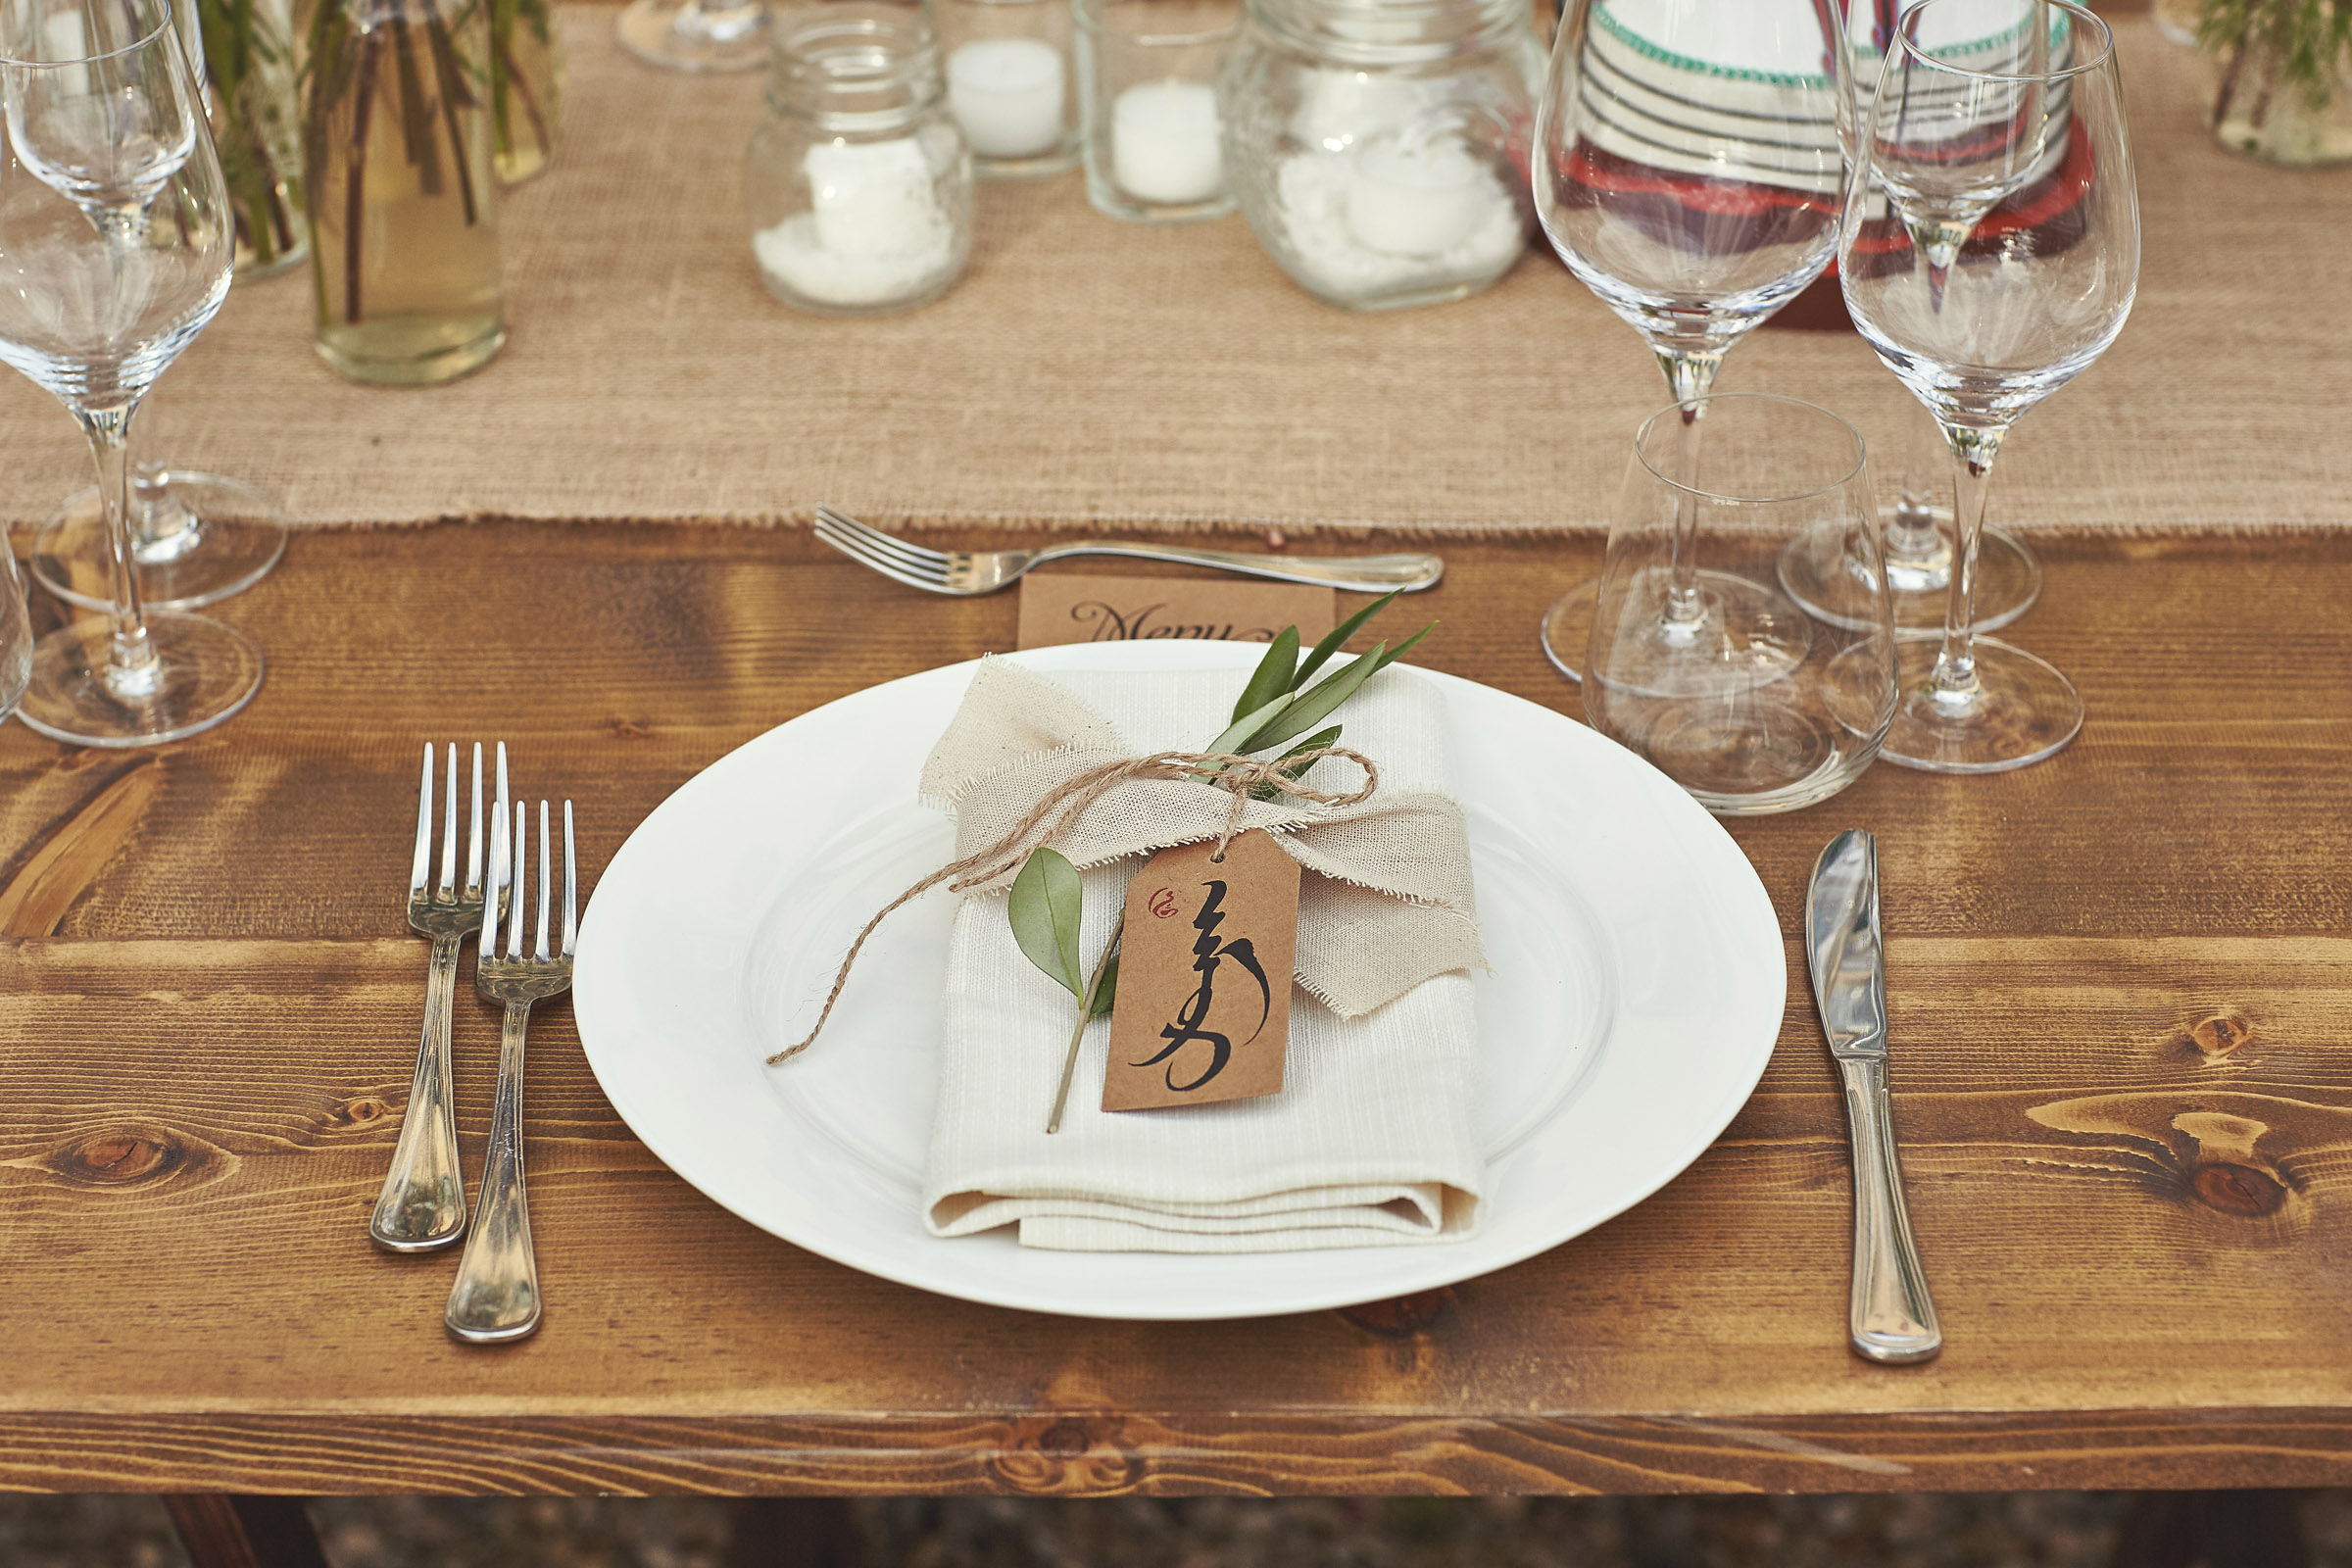 Design Your Table Decor With A Nicely Folded Napkin The Wedding Menu Hand Written Name Tags